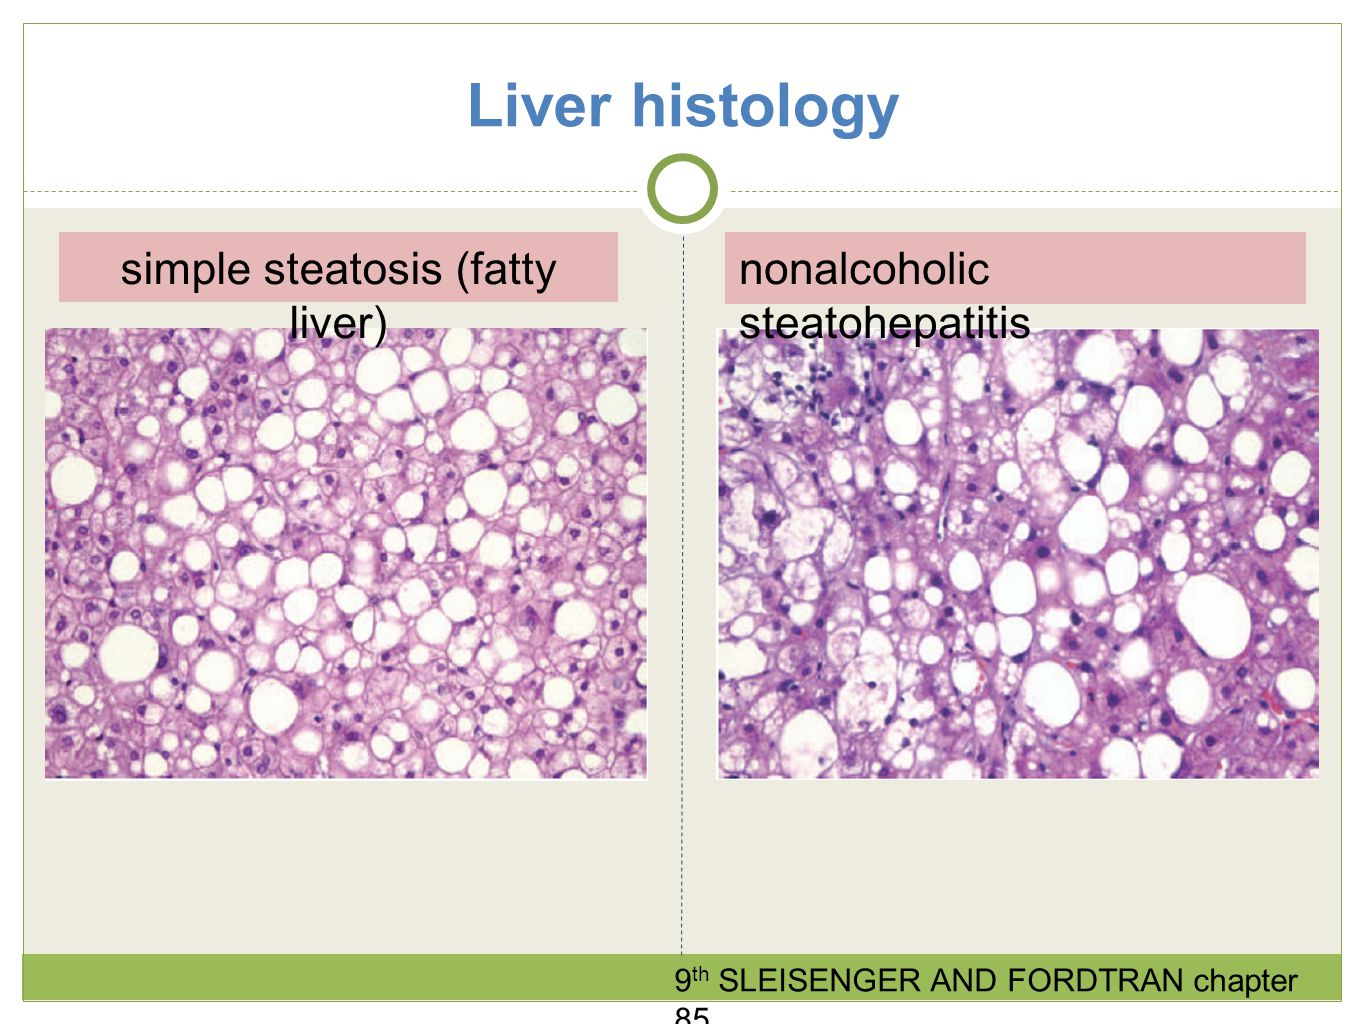 simple steatosis (fatty liver)